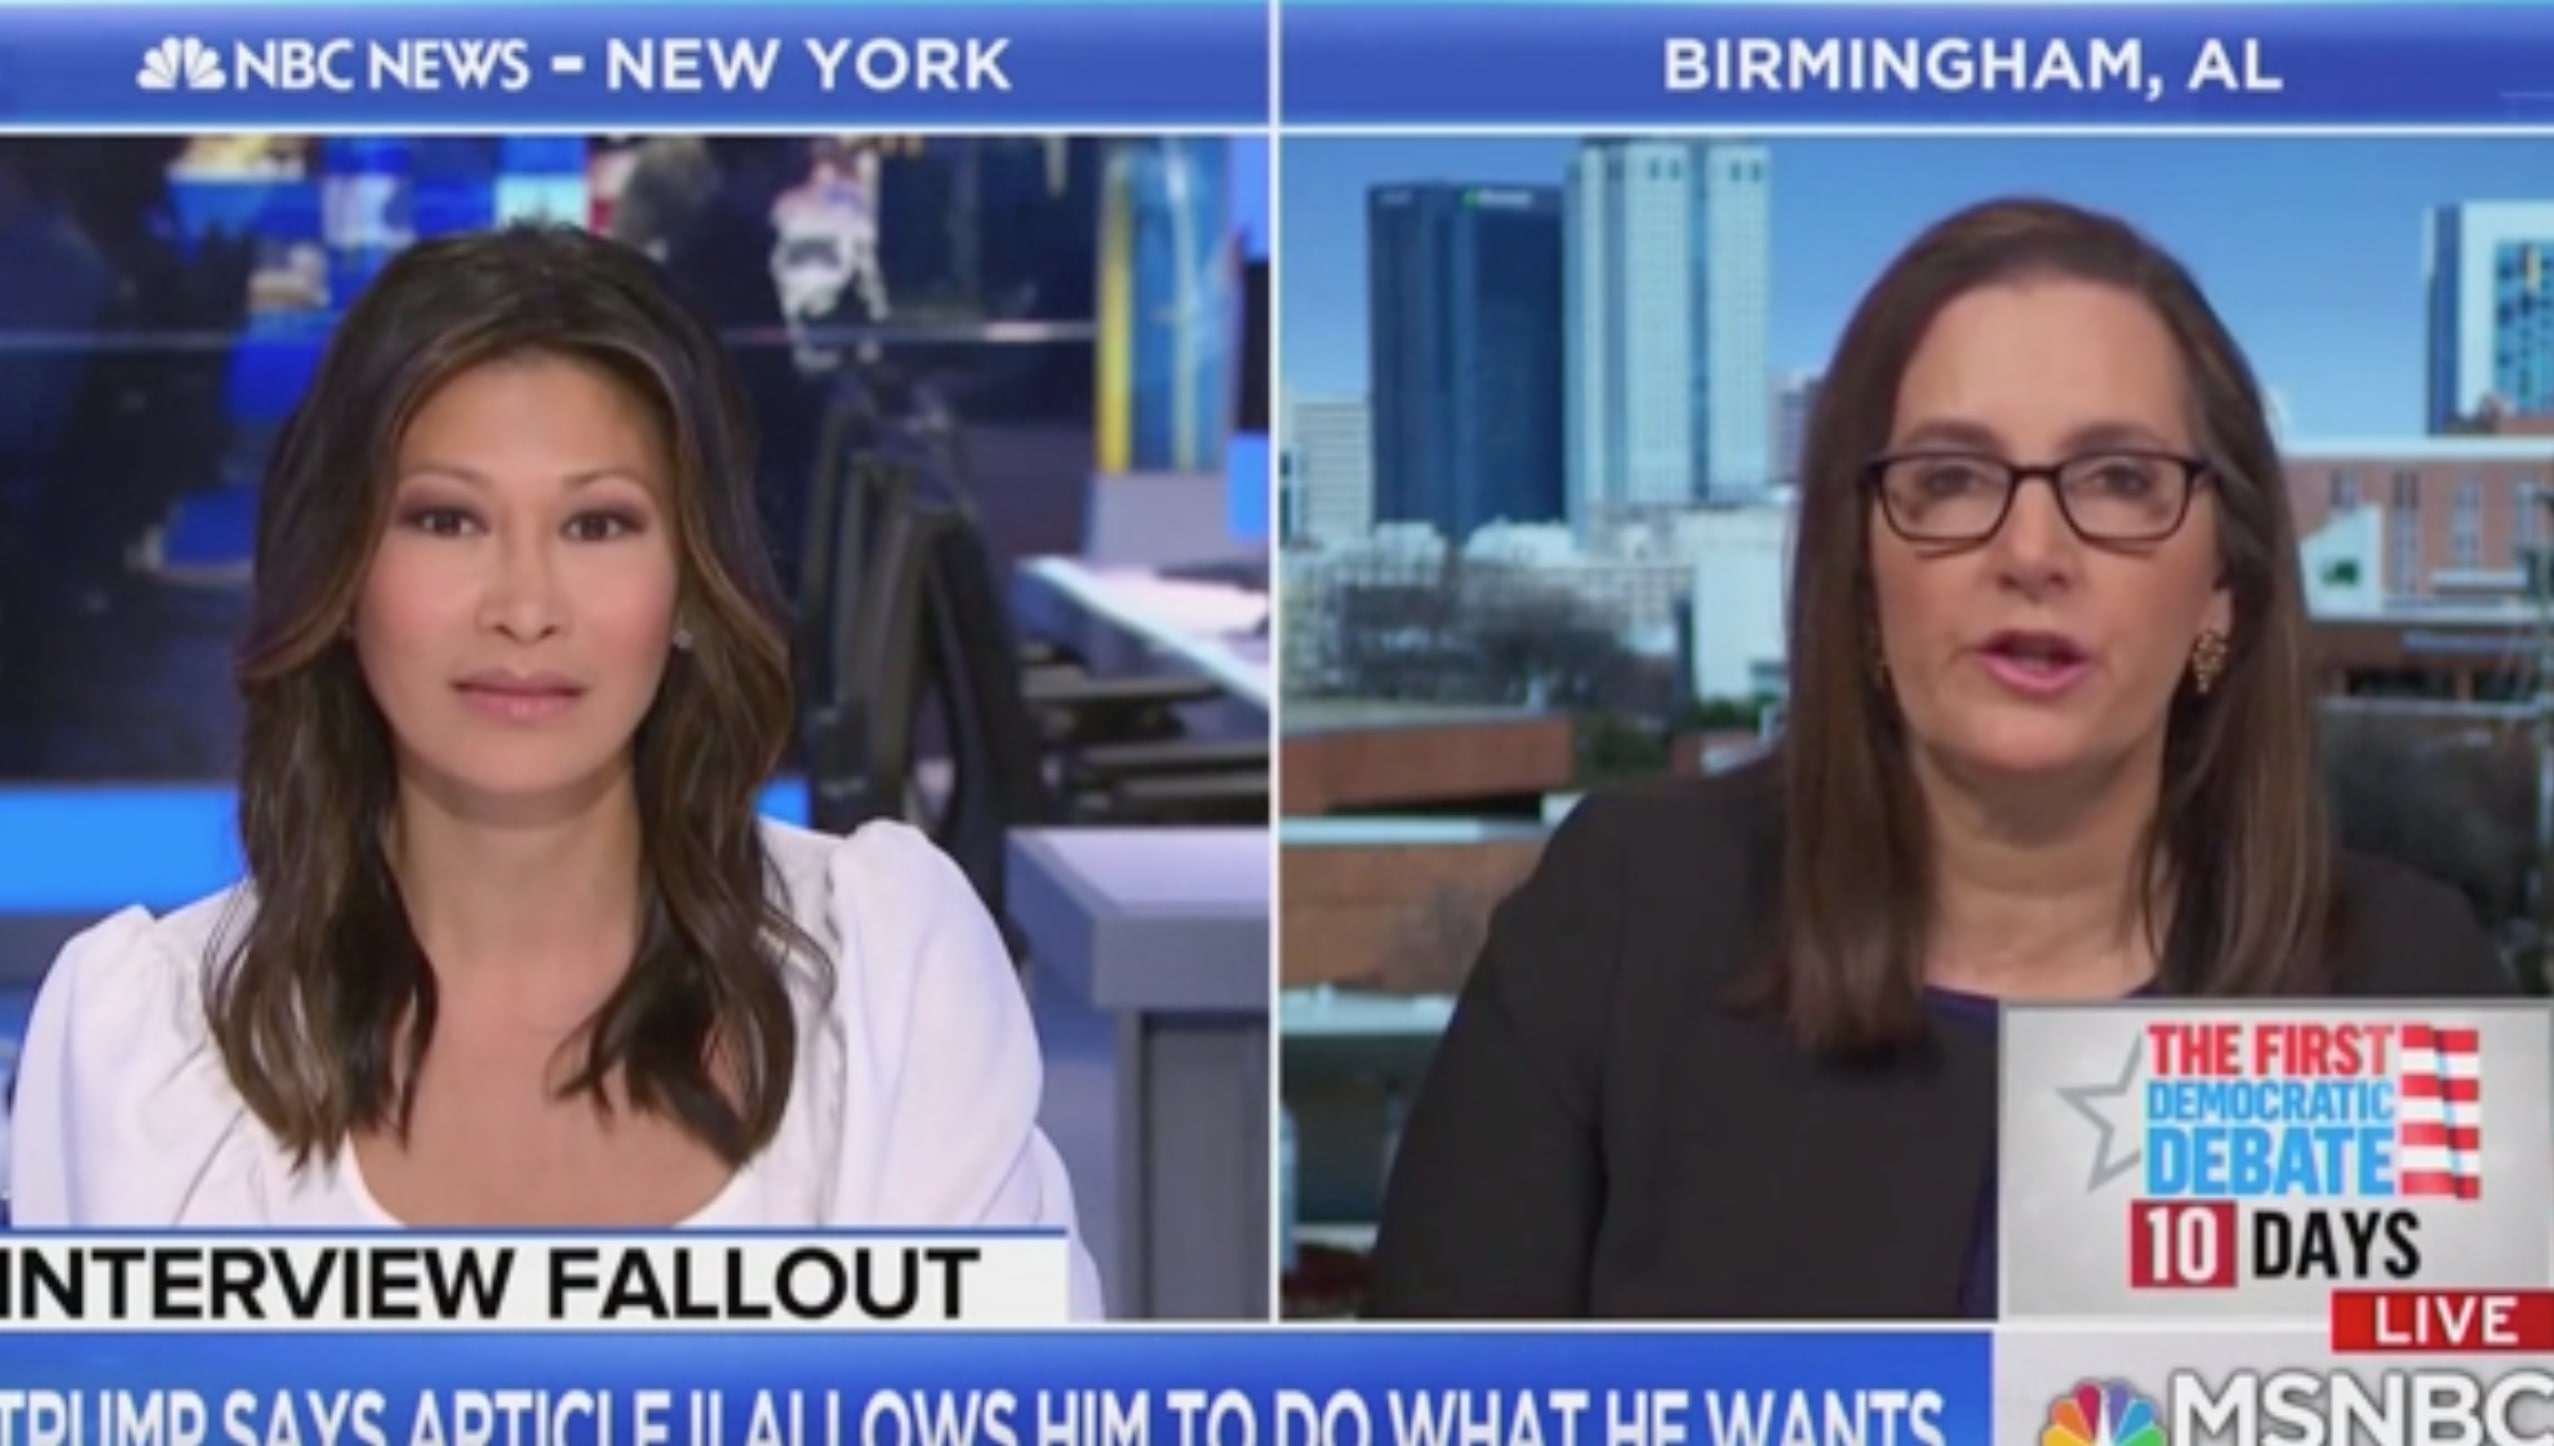 Former US Attorney Joyce Vance Slaps Down Trump Claim He Can Do Whatever He Wants: 'His Power is Not Limitless'